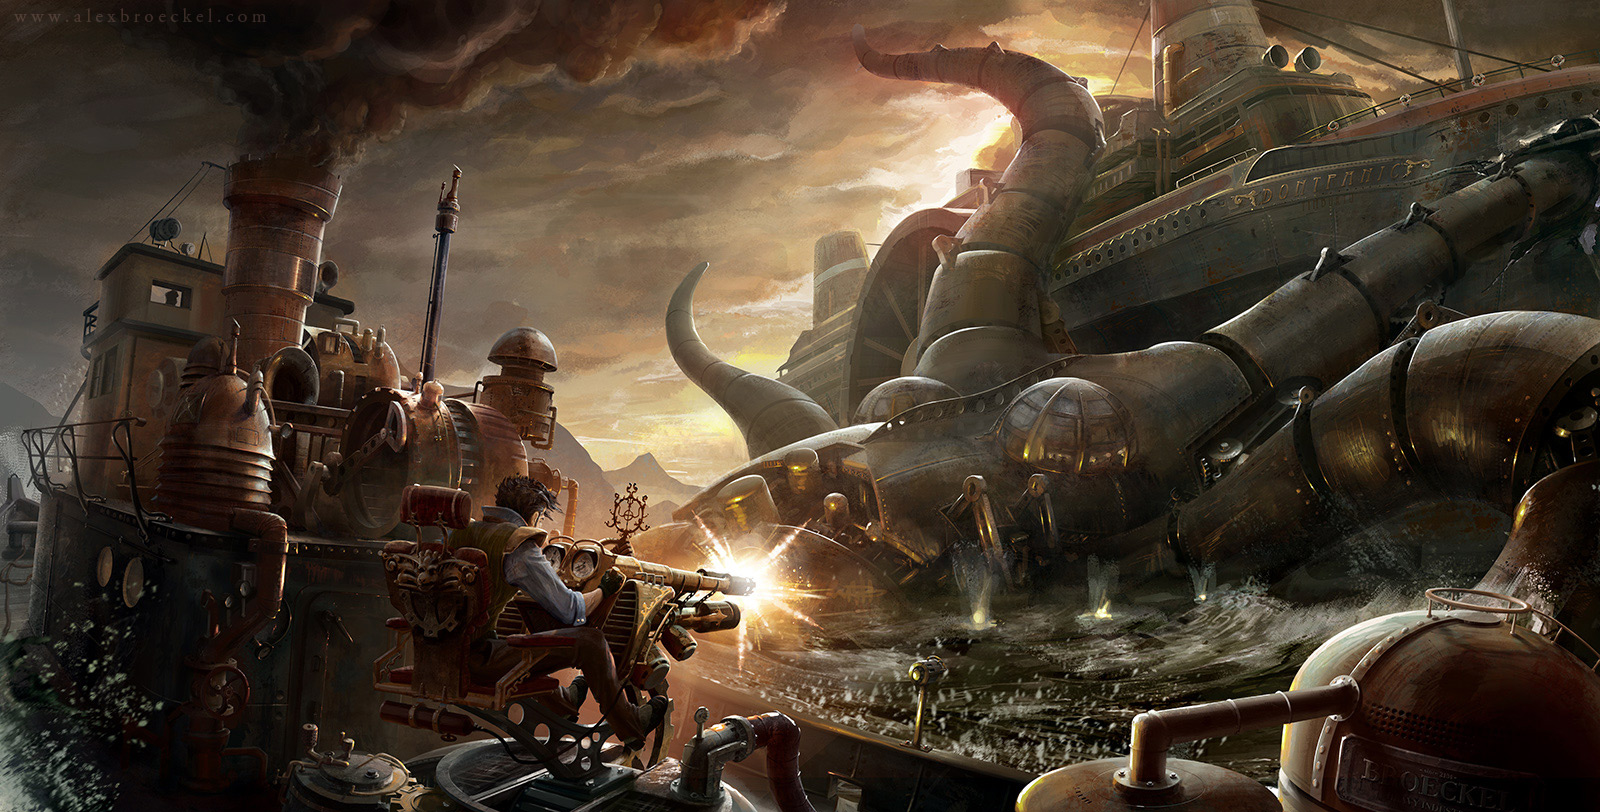 steam_punk_kraken_w1